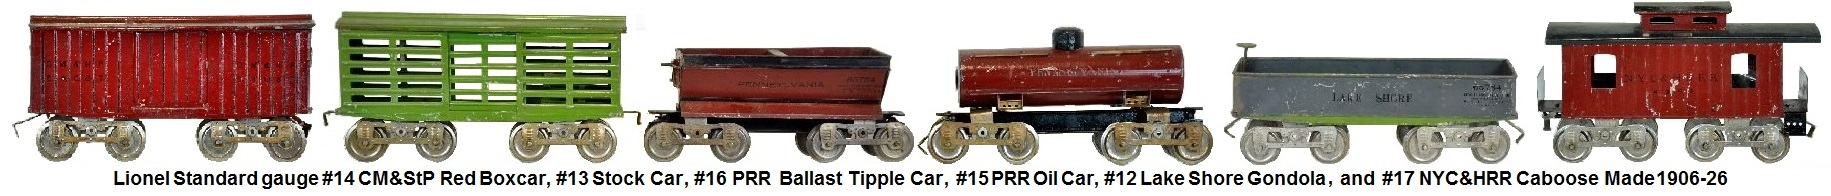 Lionel Standard gauge #14 CM&StP Red Boxcar, #13 stock car, #16 PRR ballast tipple car, #15 PRR Oil Tank Car, #12 Lake Shore Gondola, and #17 NYC&HRR Caboose made 1906-26